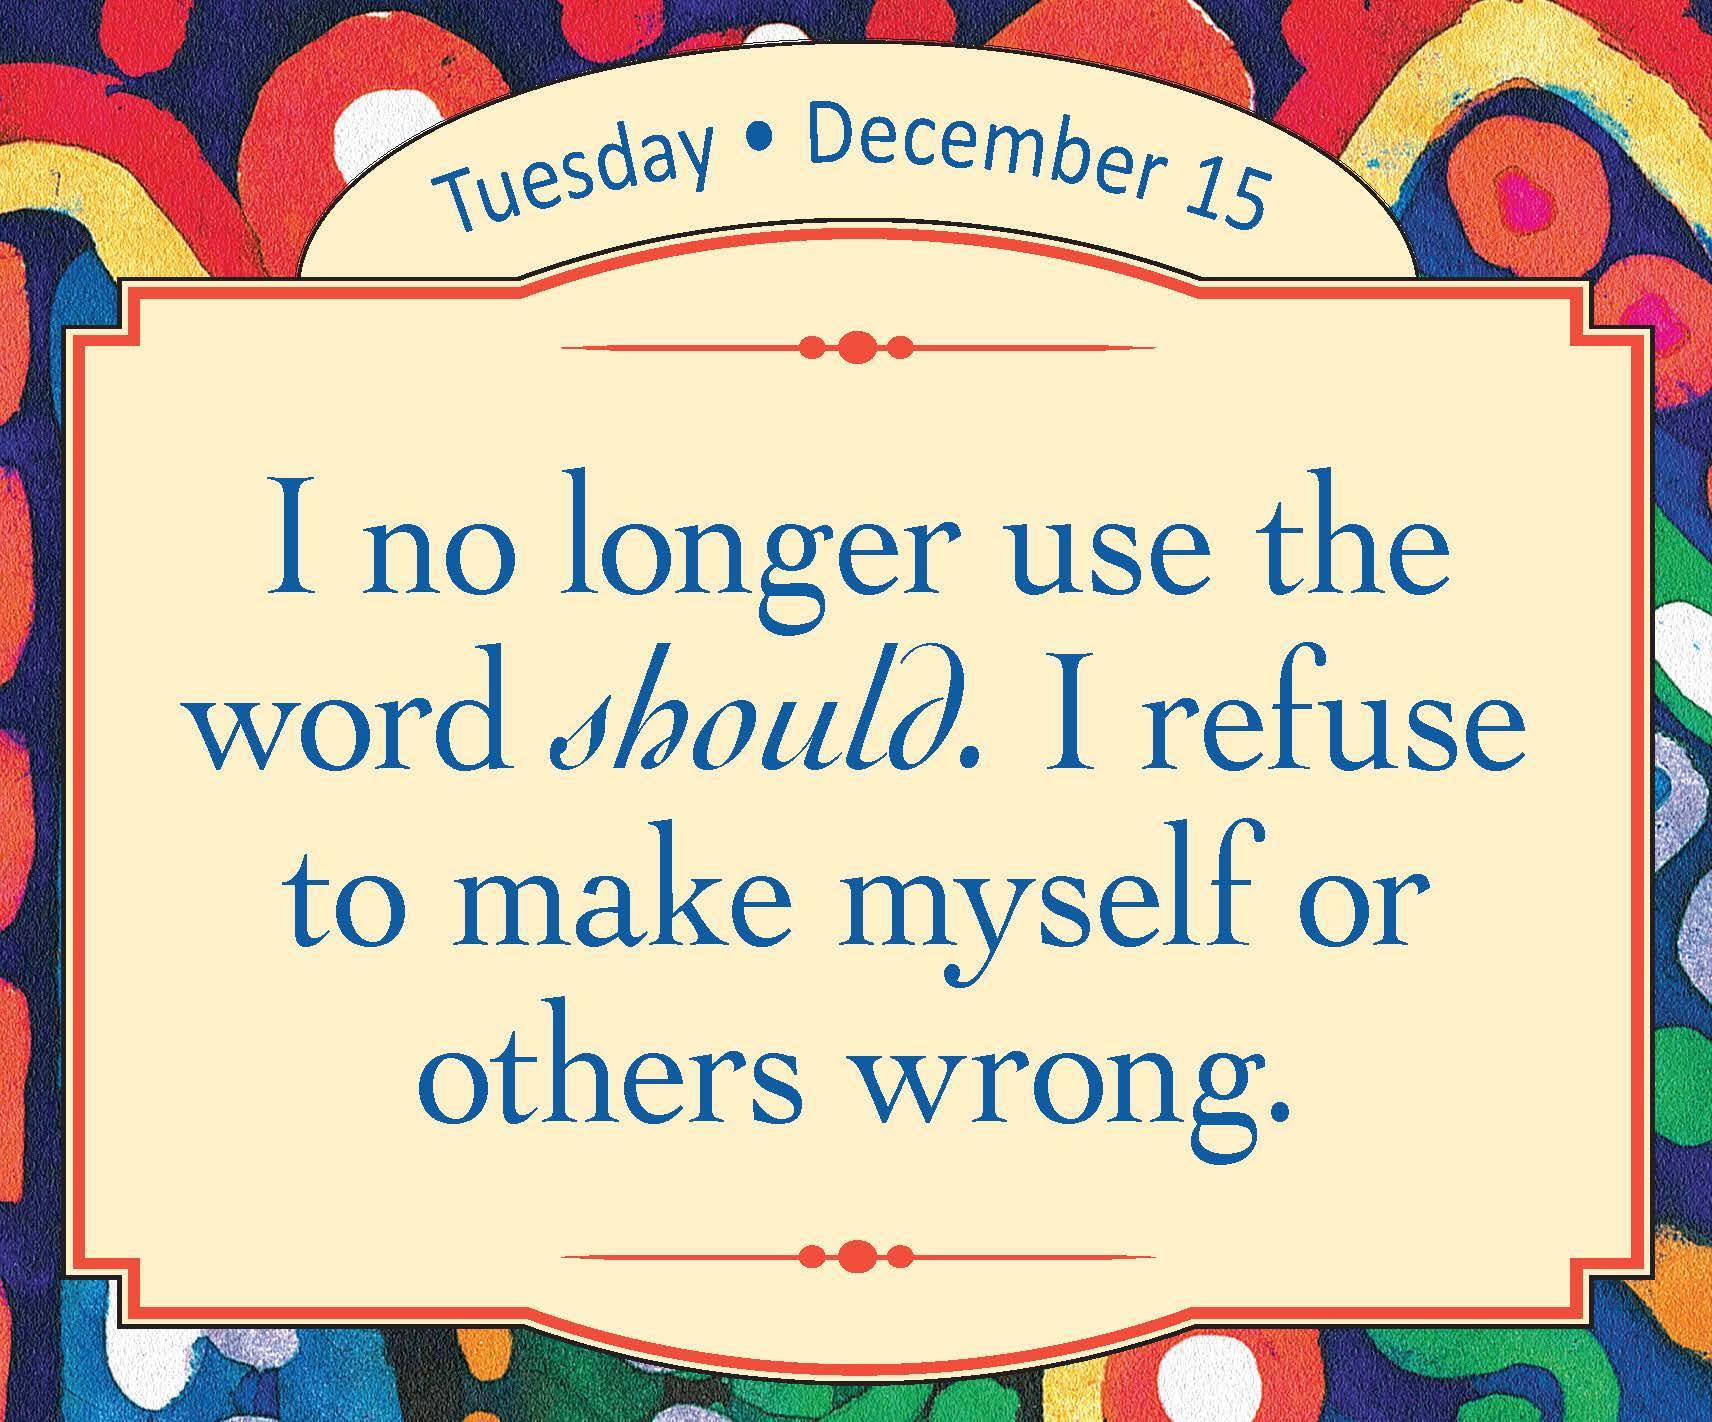 The wise words of Louise Hay in her 2015 Calendar